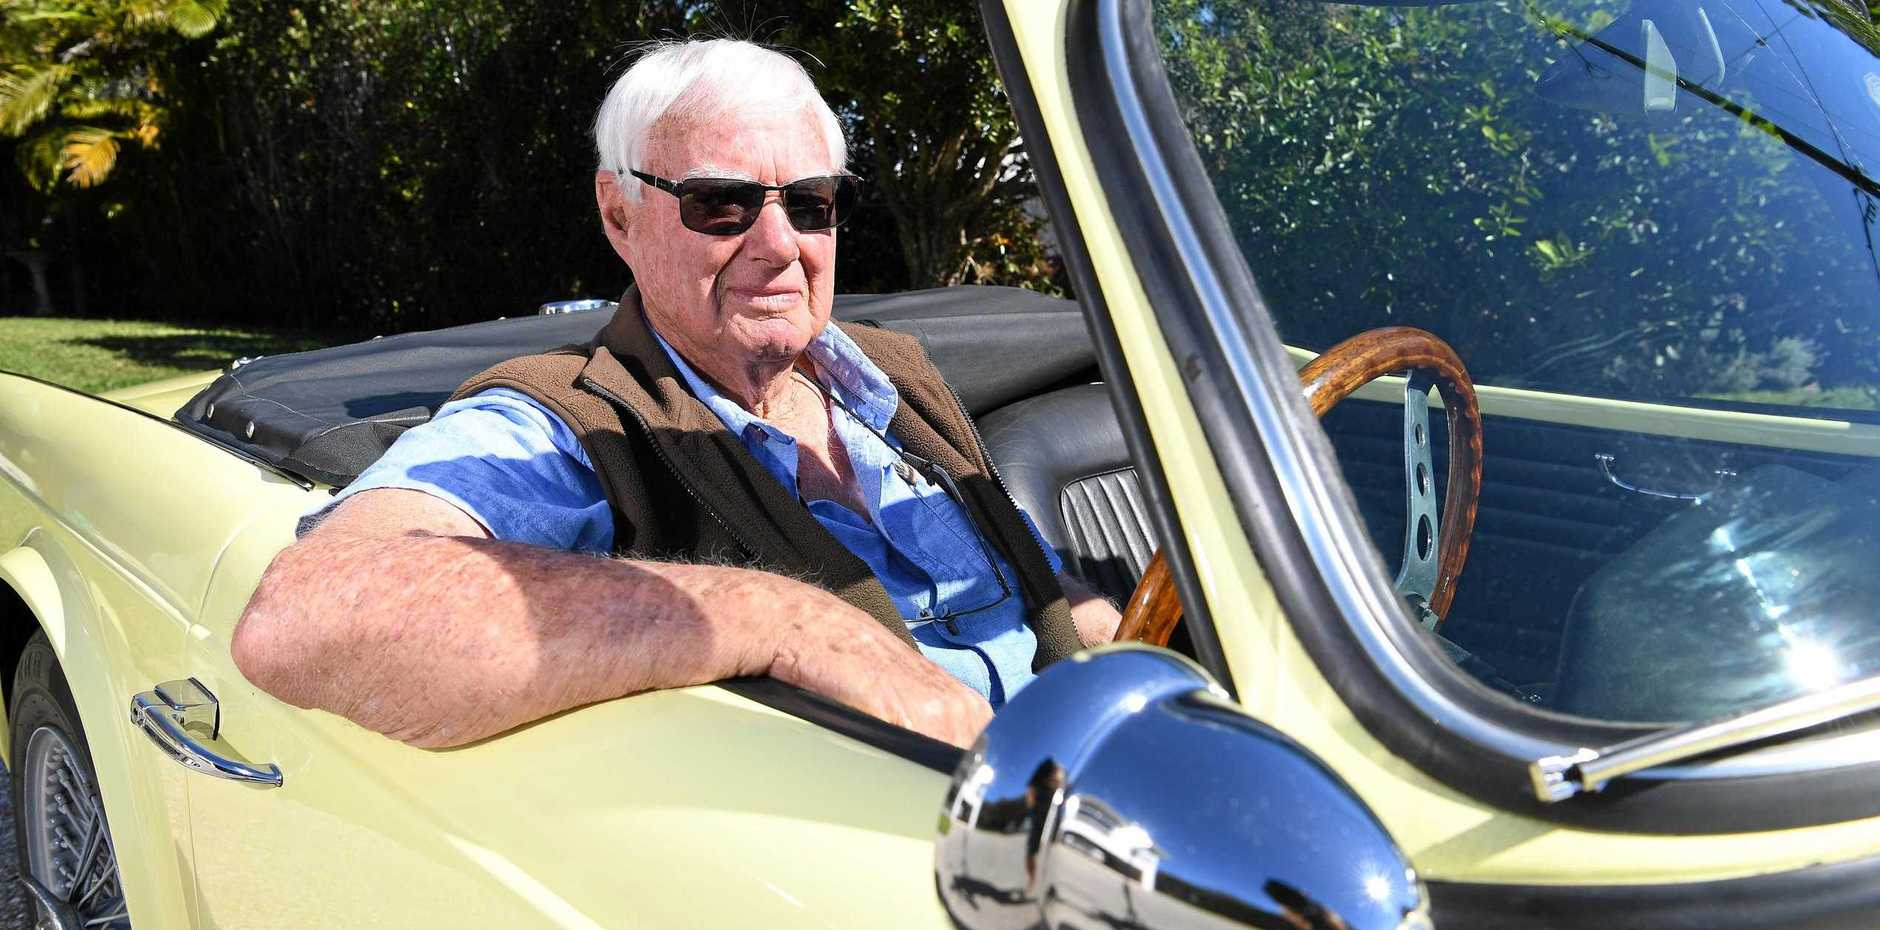 FOR THE LOVE OF CARS: Bob Wagg with his 1962 Triumph TR4 two-seater Roadster.